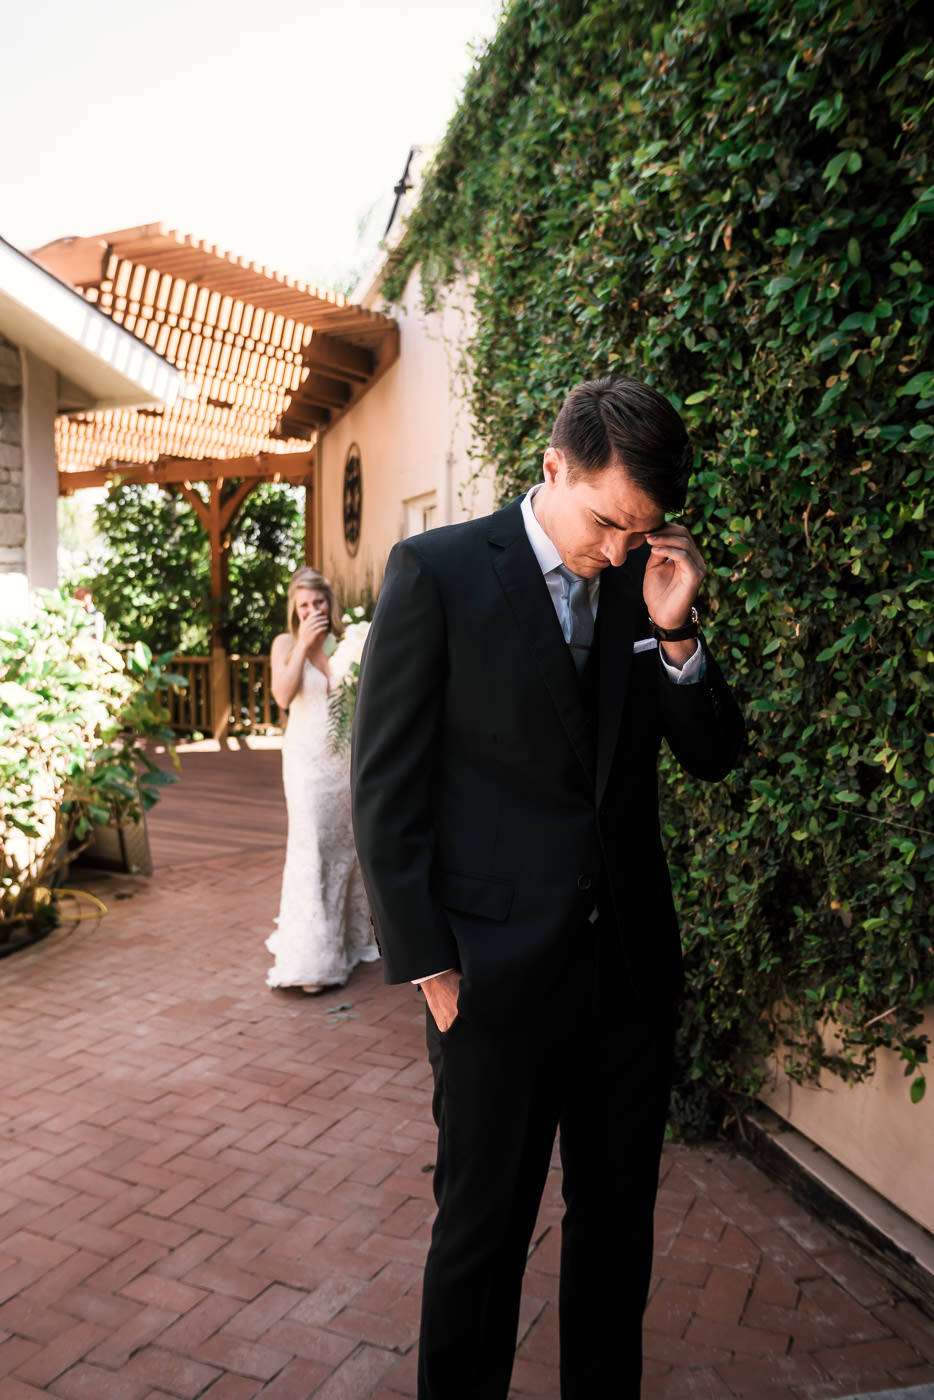 Groom sheds tears of joy as he hears his bride coming. He anxiously anticipates seeing her for the first time at their Temecula wedding.